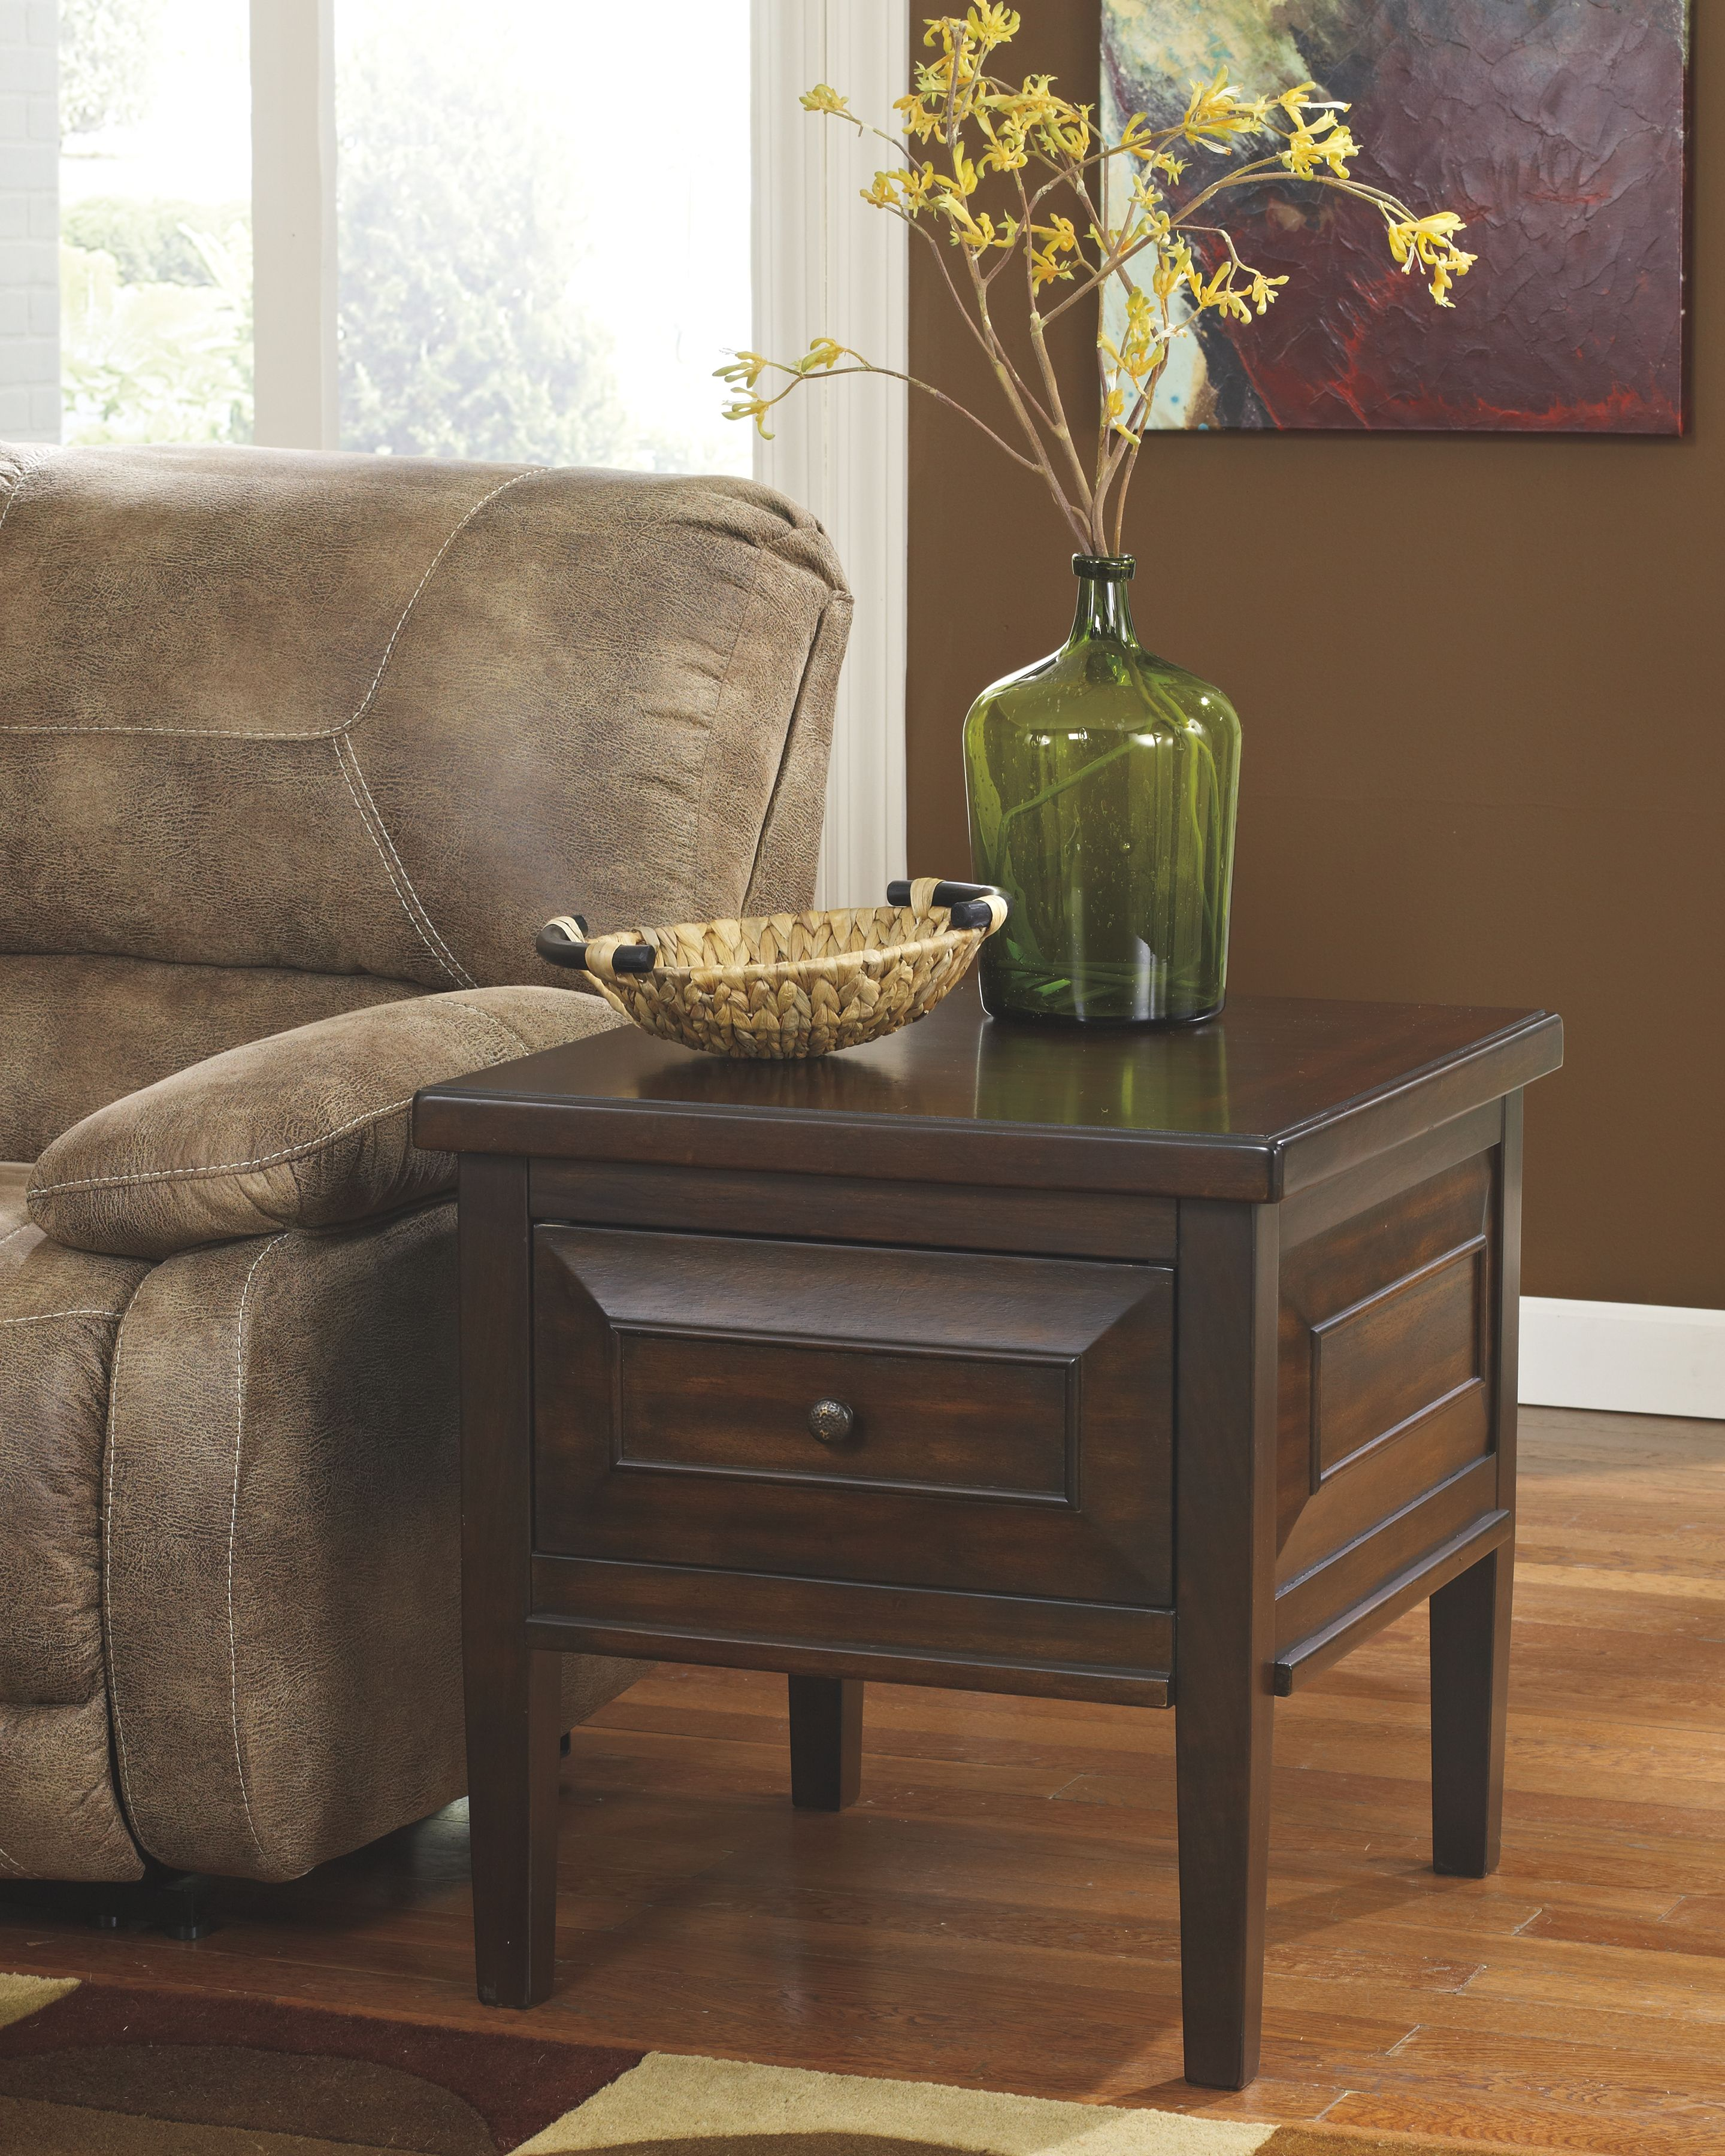 Hindell Park End Table, Rustic Brown Furniture, End